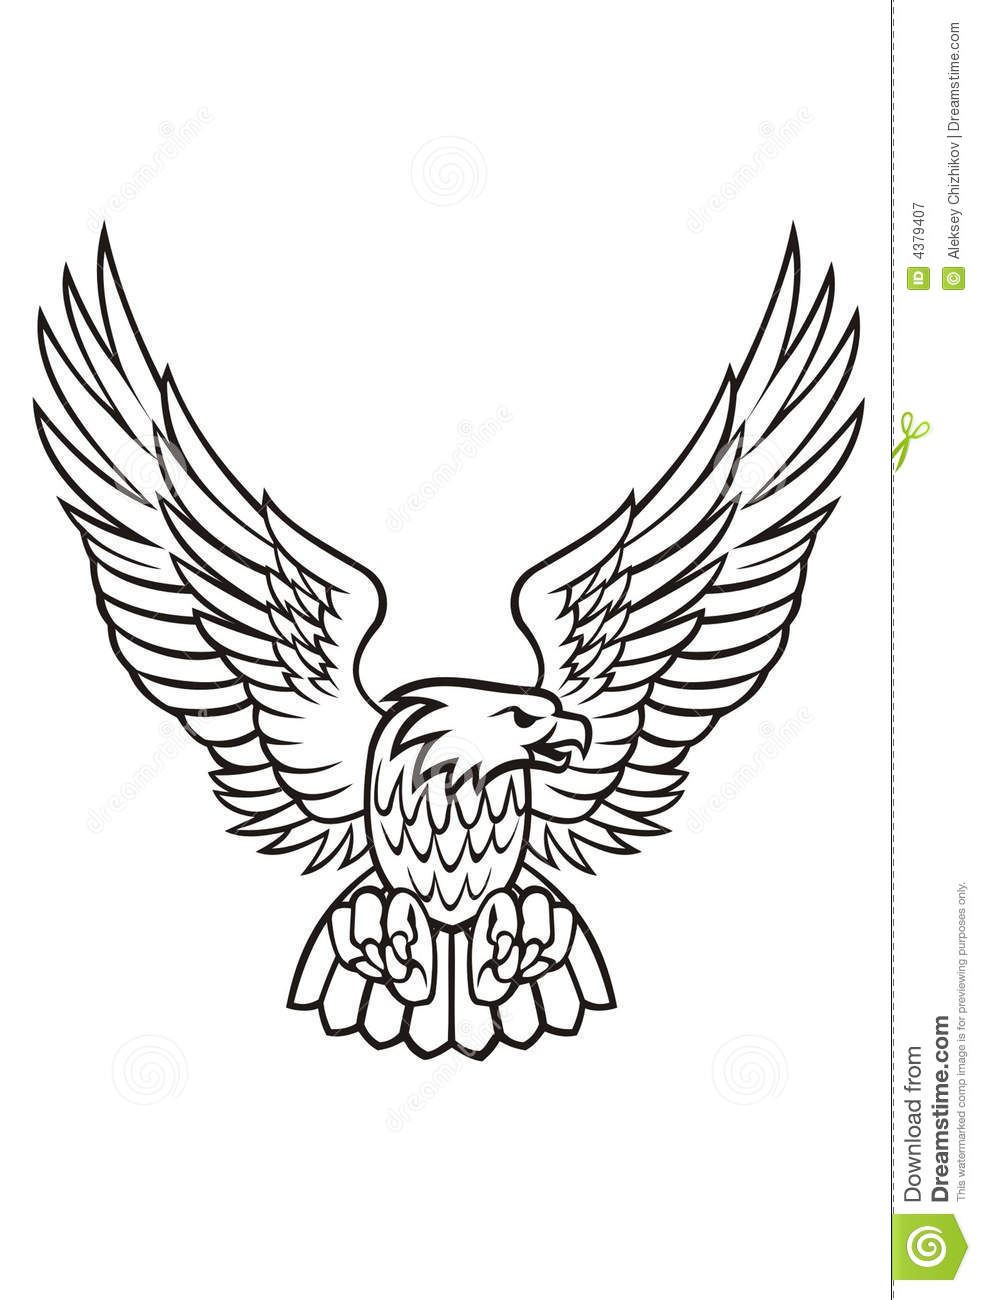 hight resolution of eagle clipart black and white 4